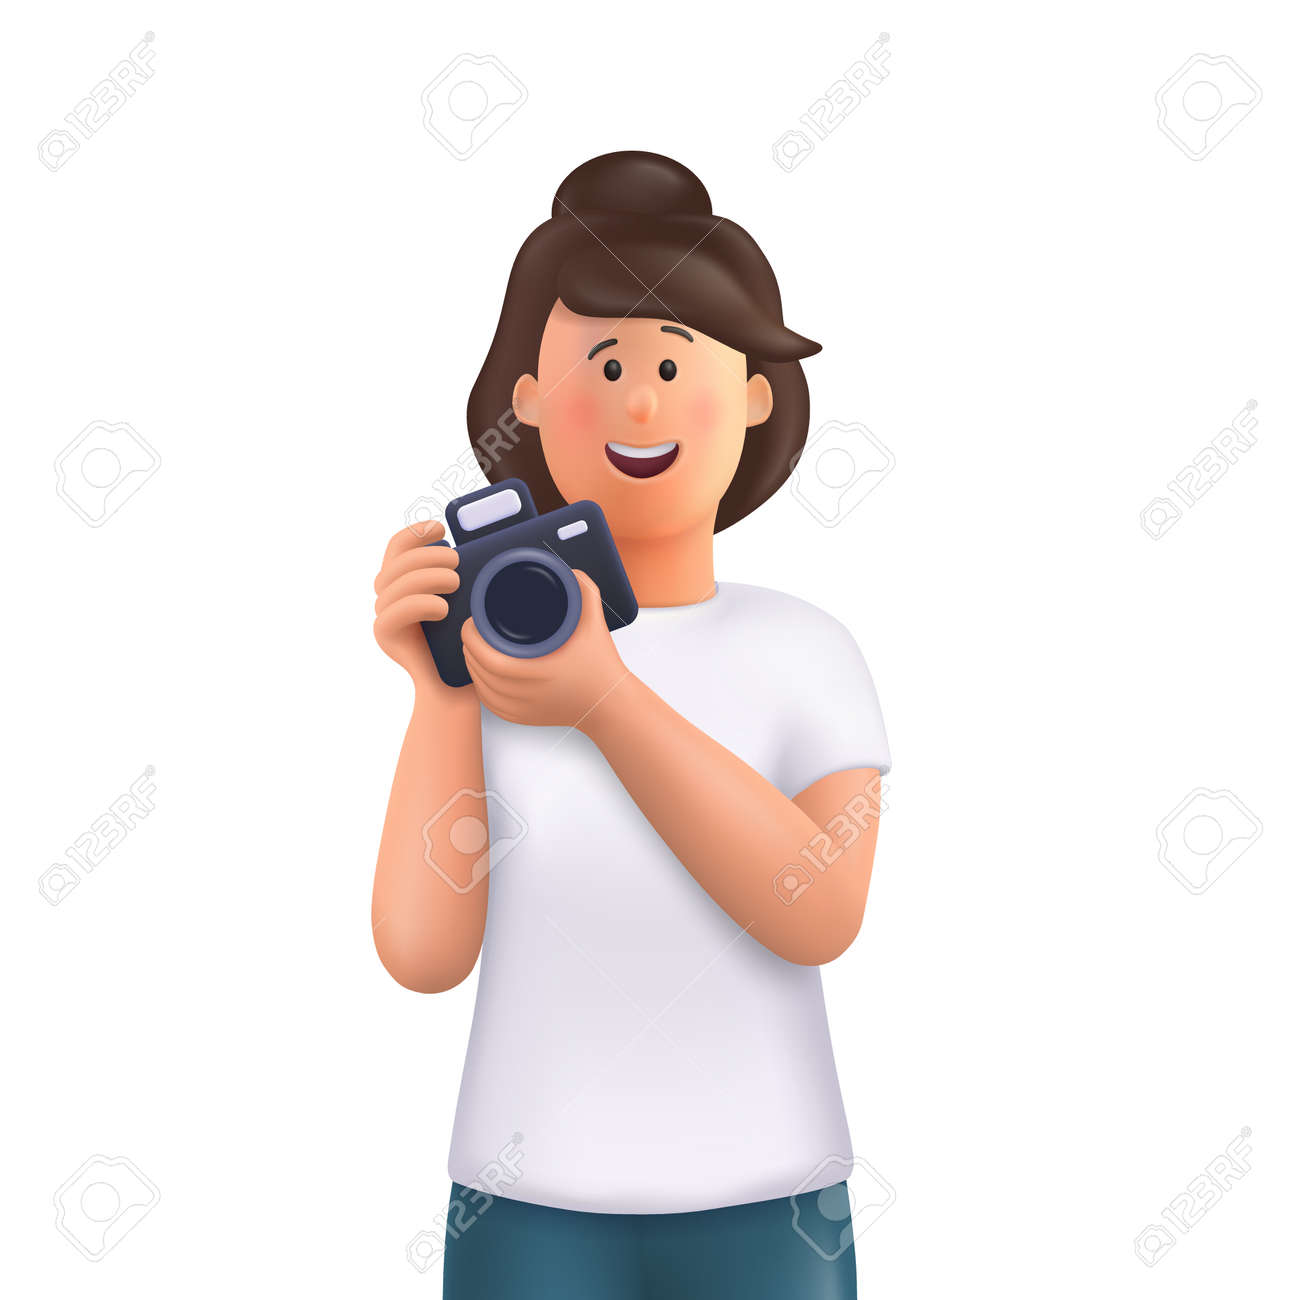 Young woman Jane holding camera, taking photo and smiling. Professional photographer, cameraman concept. 3d vector people character illustration. - 170510150